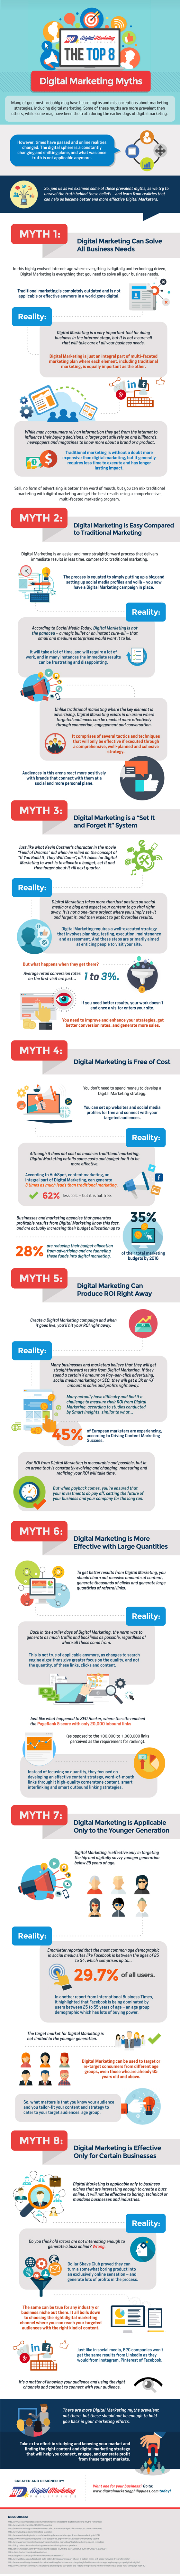 The Top 8 Digital Marketing Myths (Infographic) - An Infographic from Digital Marketing Philippines